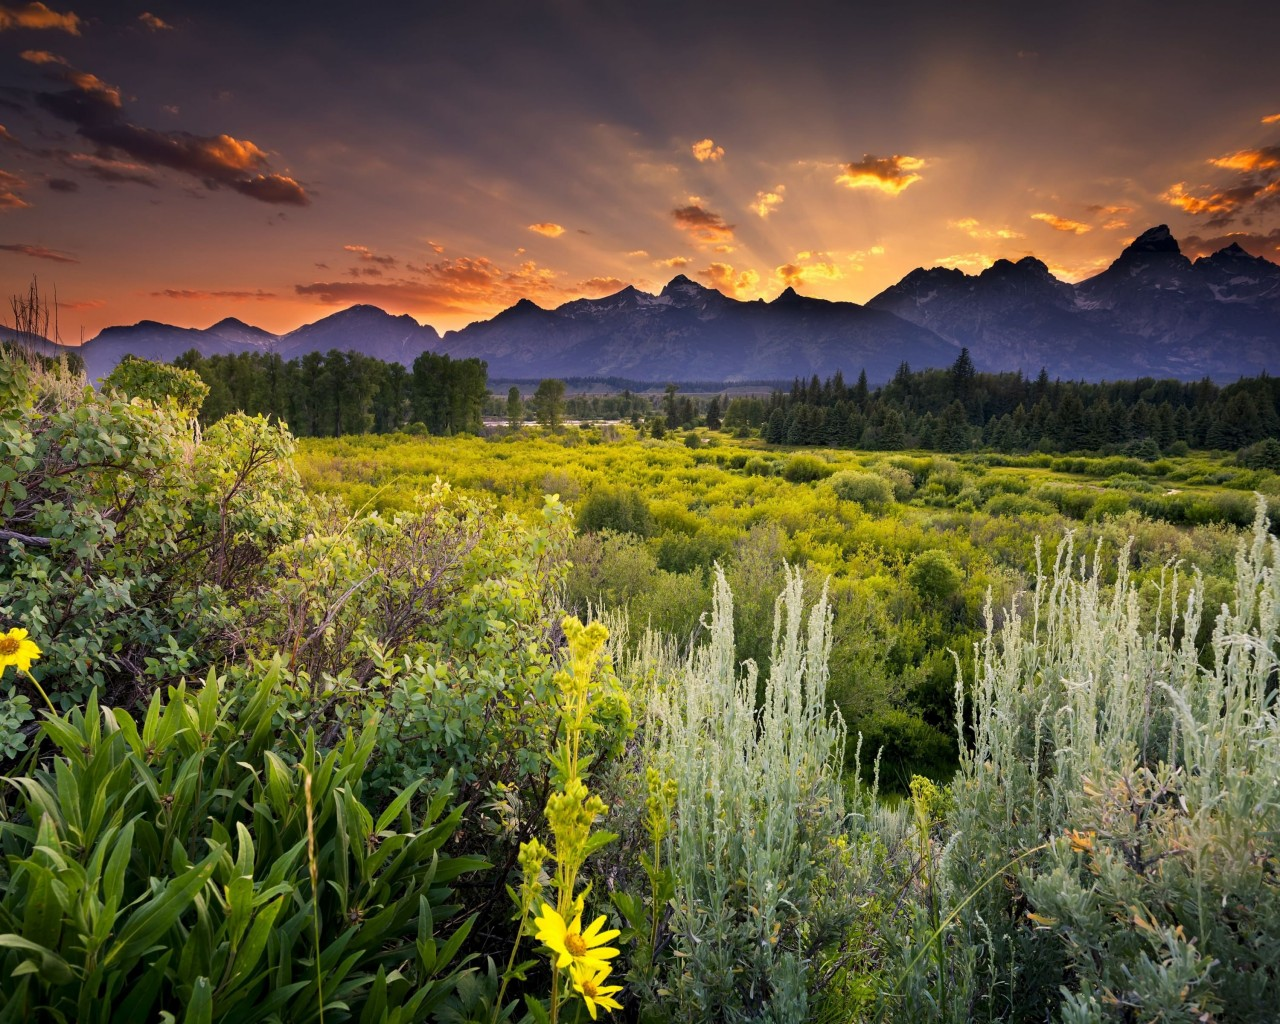 Sunset in Grand Teton National Park Wallpaper for Desktop 1280x1024